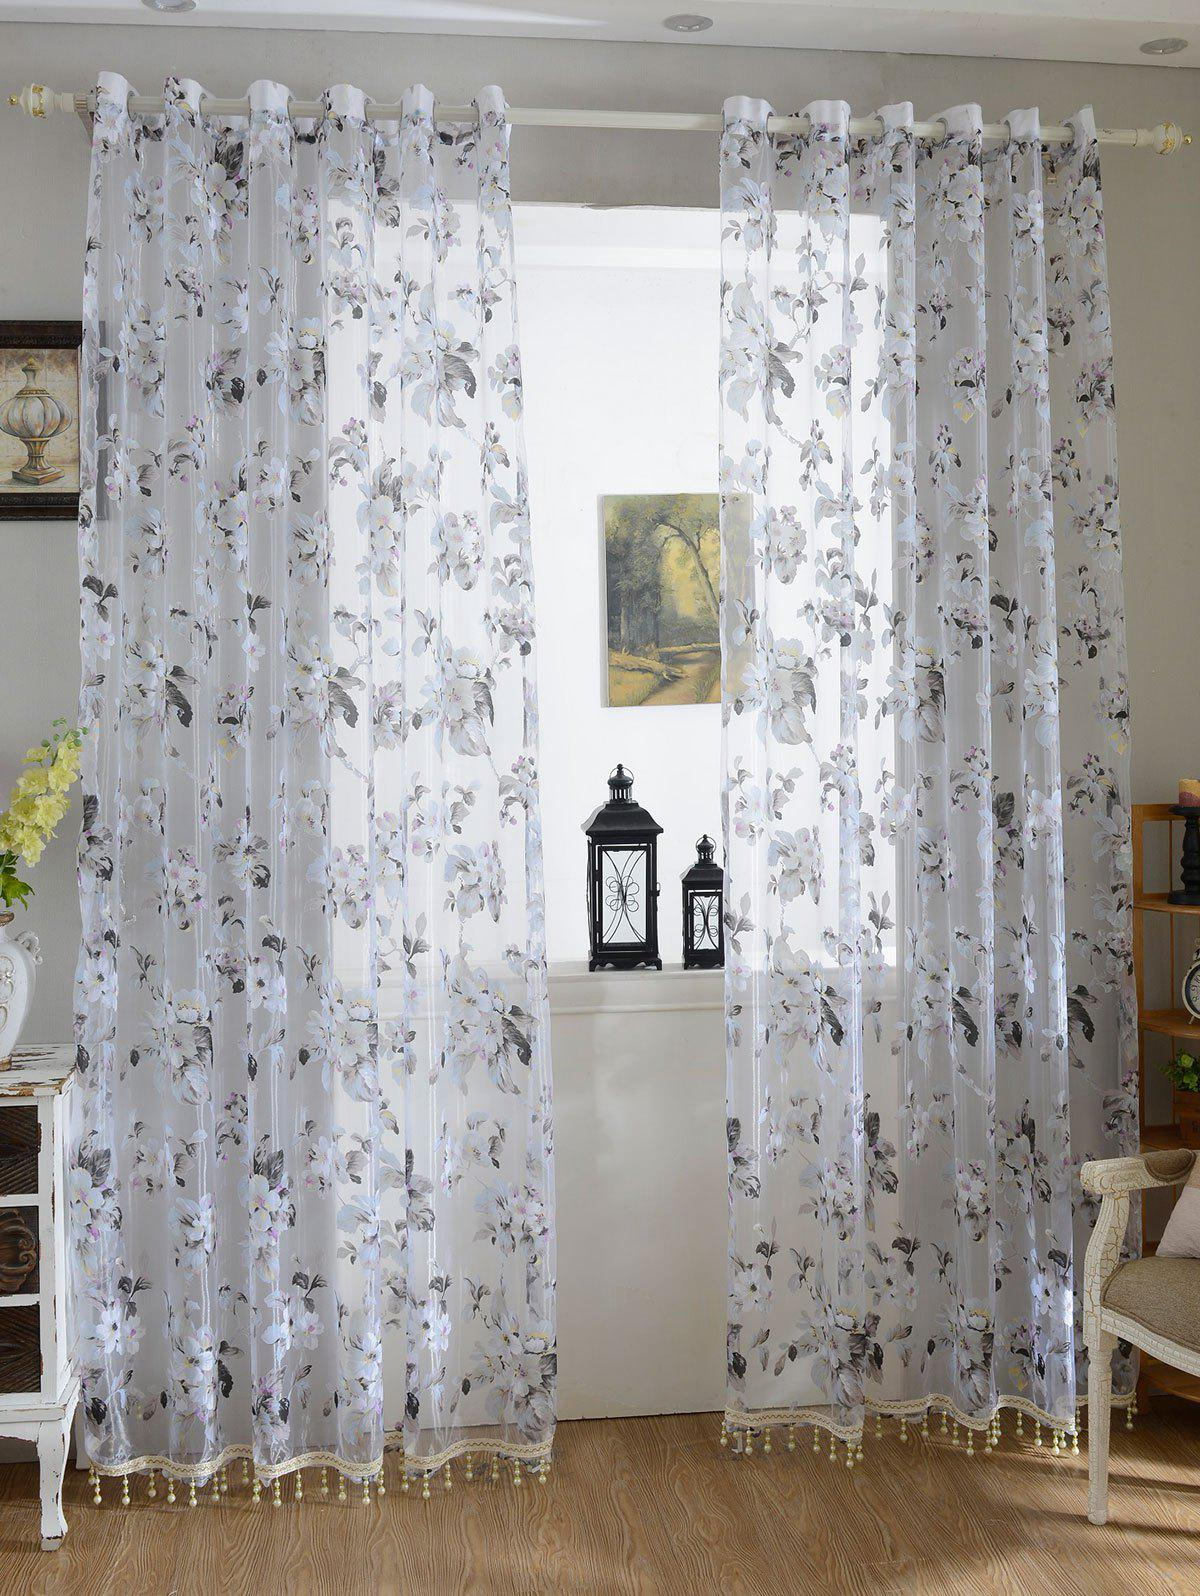 Flower Sheer Fabric Tulle Curtain with Beads Pendant - GREY WHITE 100*200CM